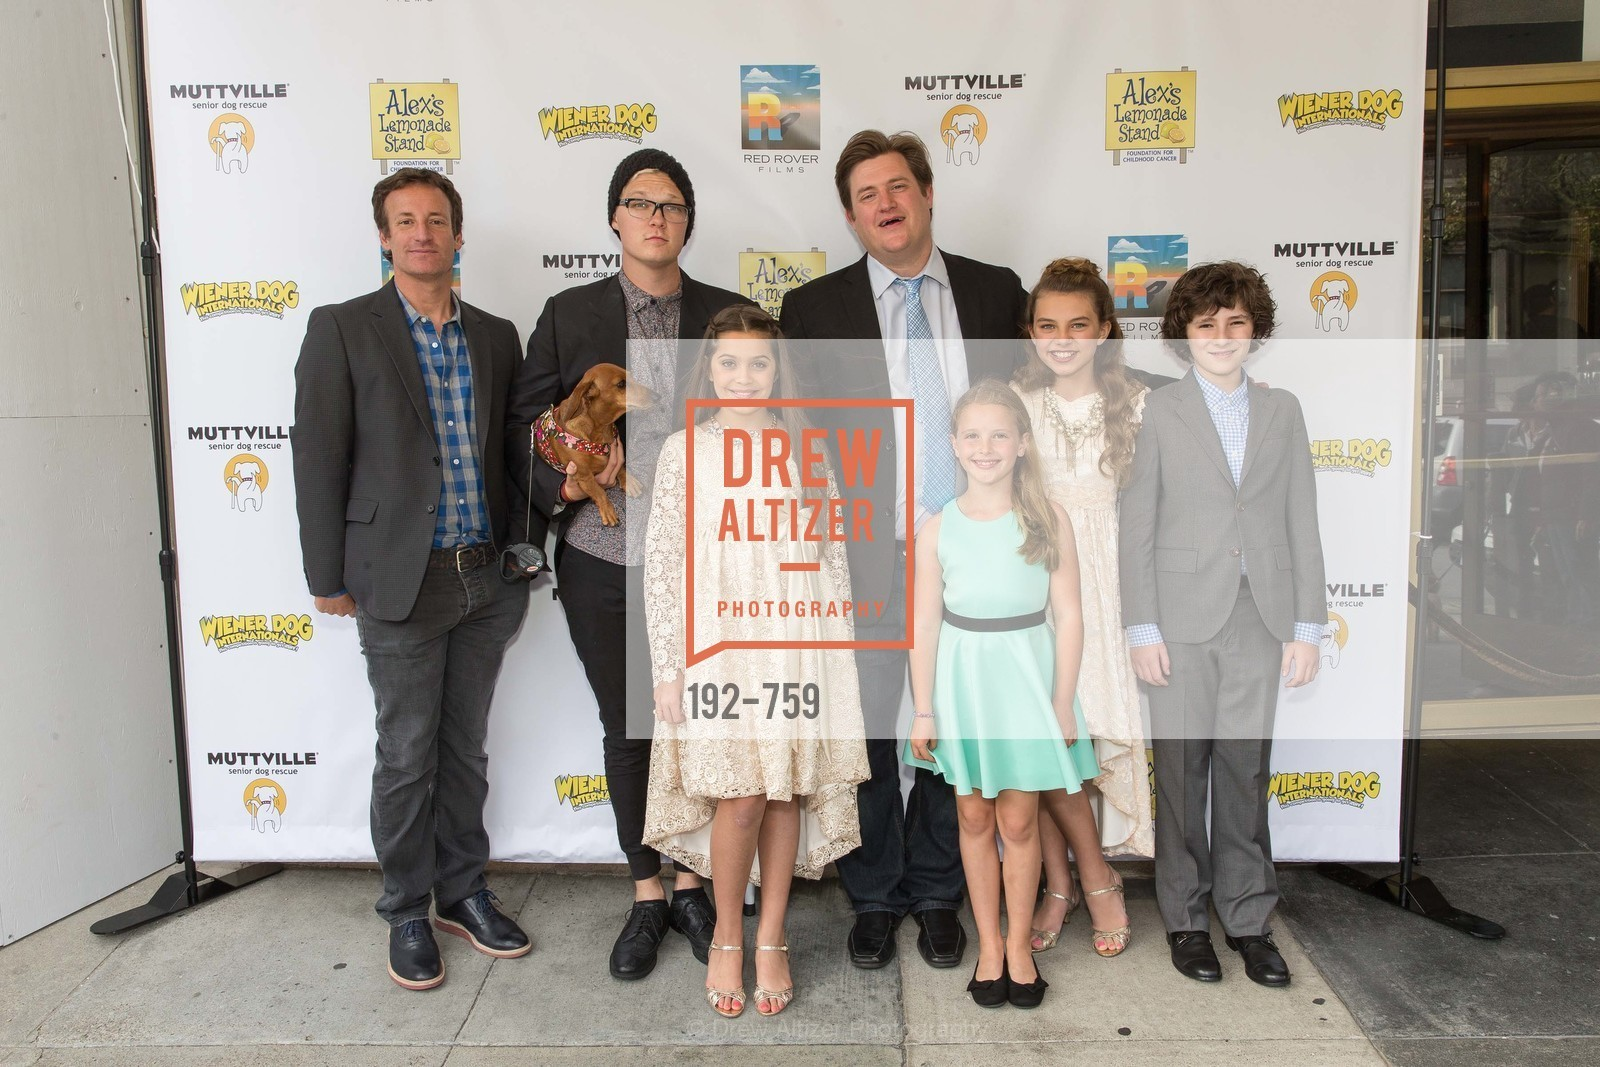 Todd Traina, Austin Anderson, Emmy Perry, Kevan Peterson, Daisy Traina, Caitlin Carmichael, Julian Feder, WEINER DOG, The Movie, Screening, The Vogue Theater. 3290 Sacramento St, June 1st, 2015,Drew Altizer, Drew Altizer Photography, full-service agency, private events, San Francisco photographer, photographer california